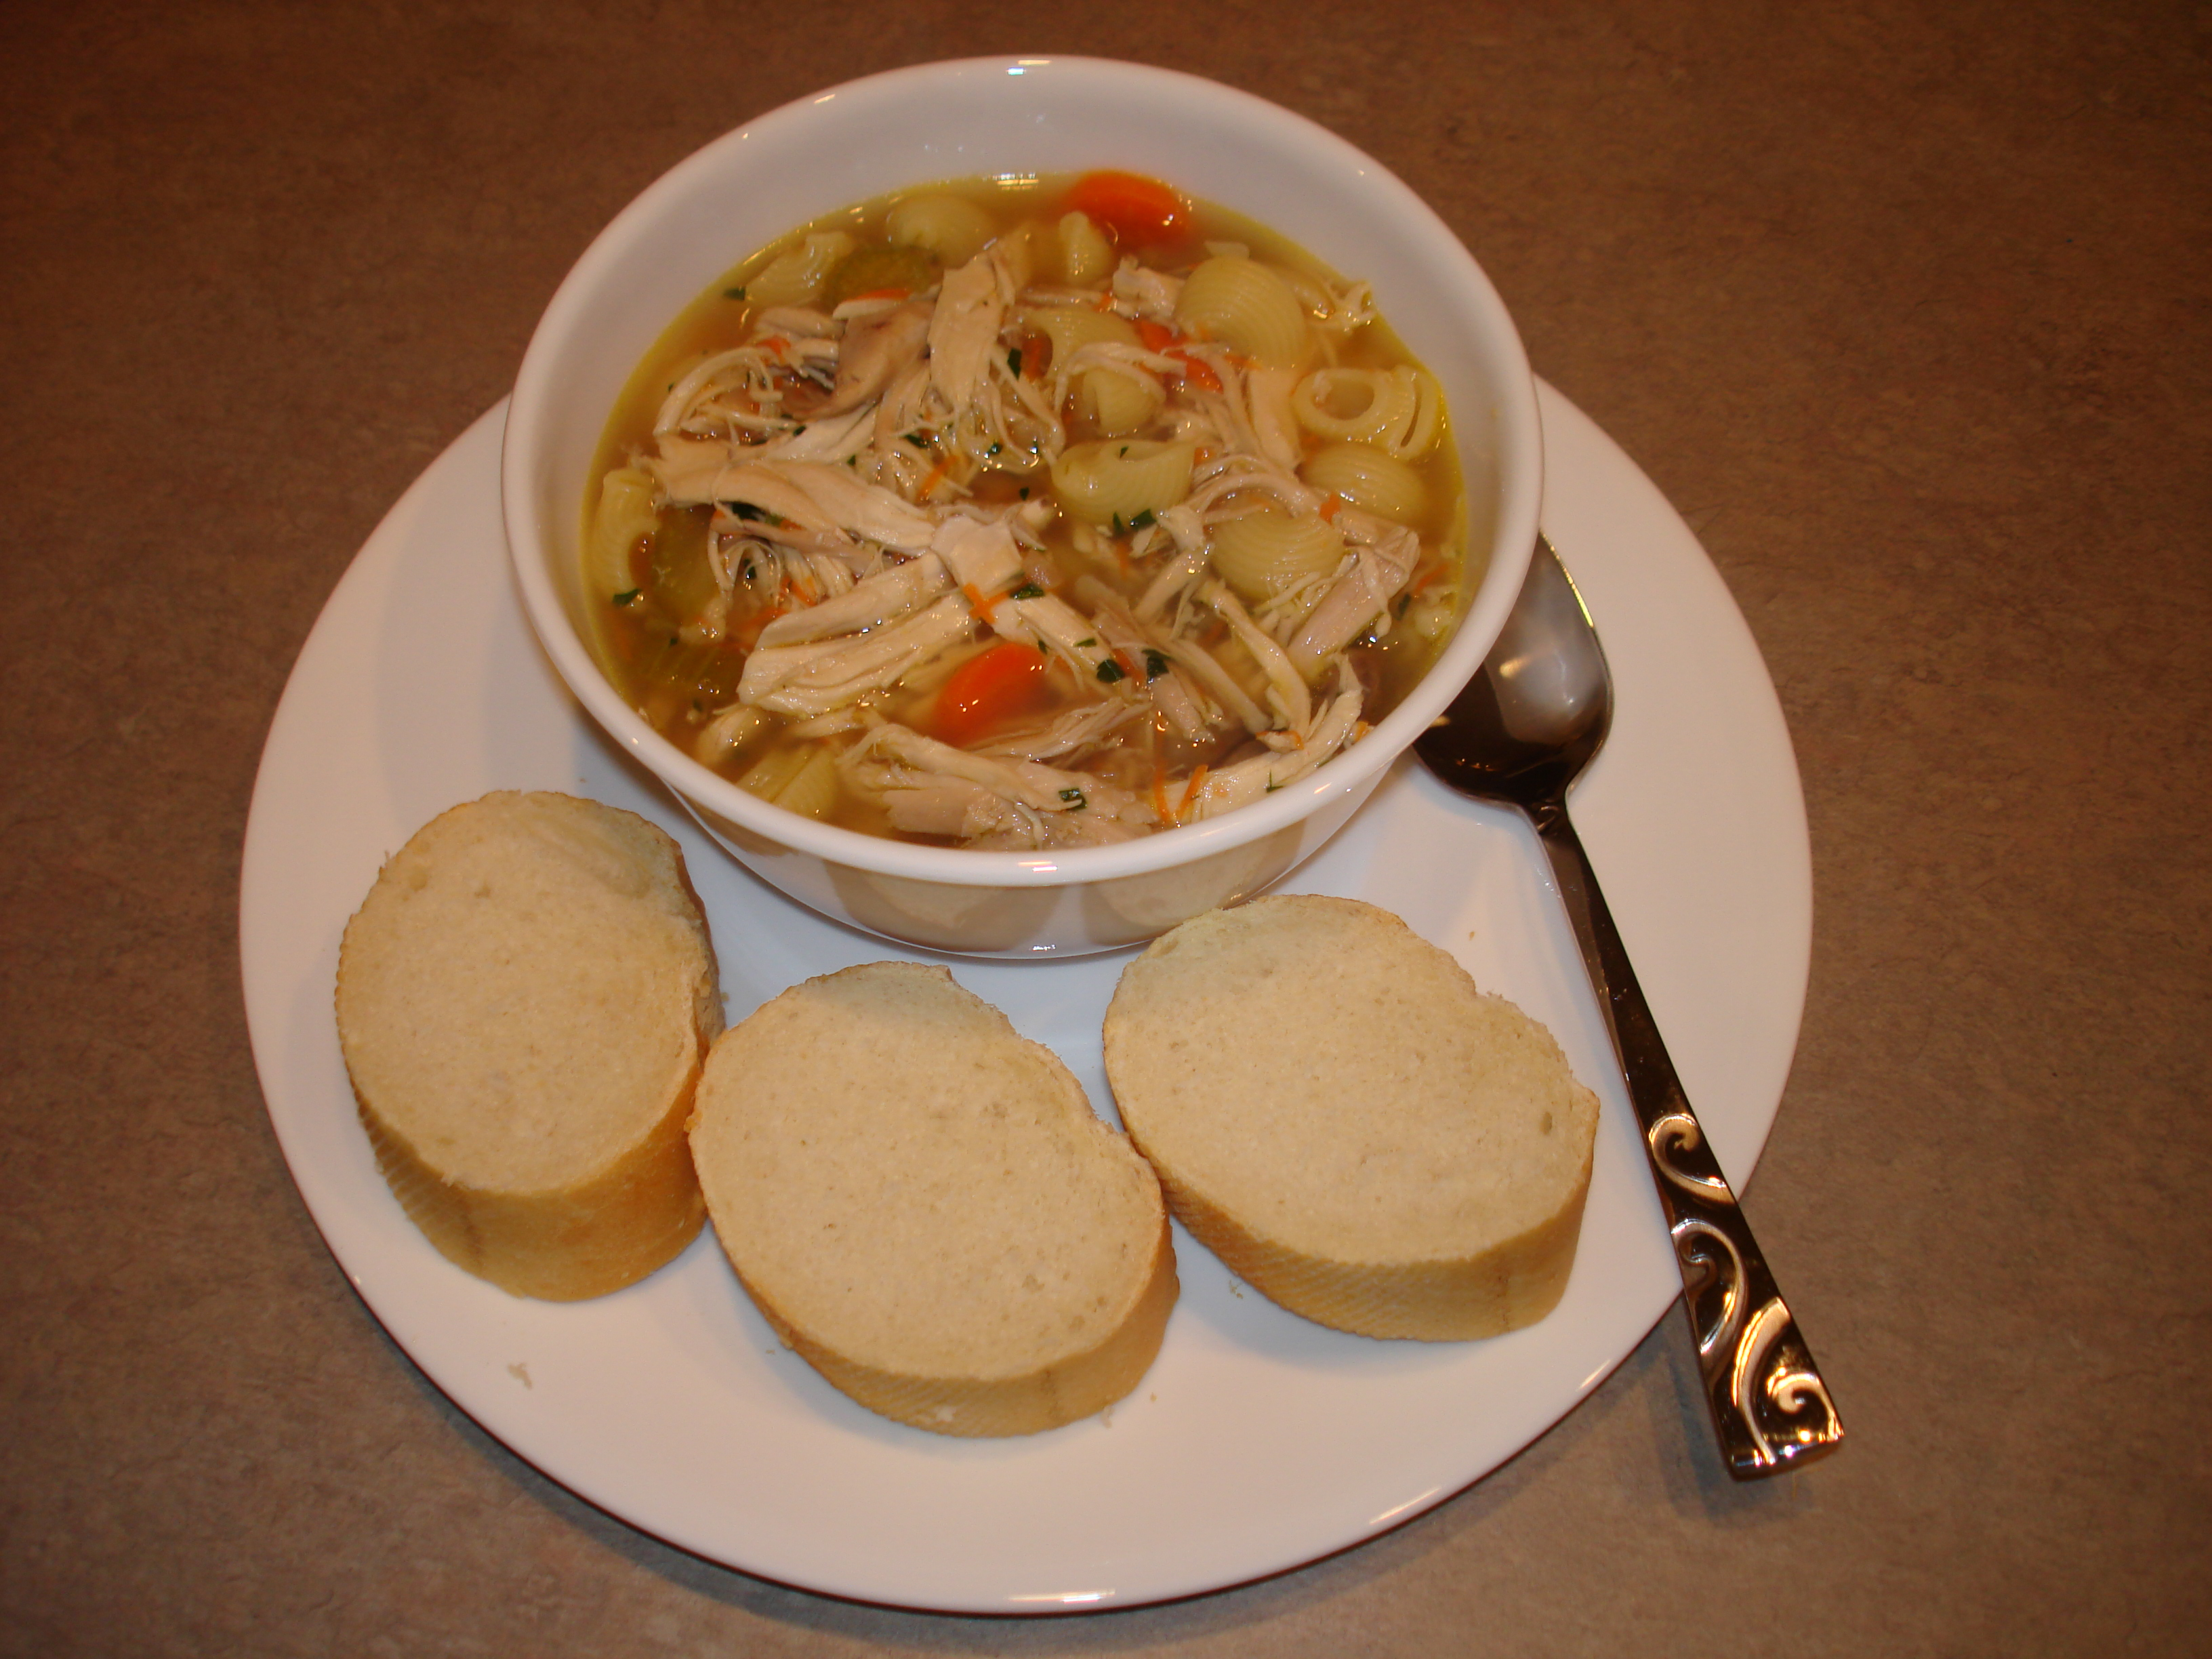 https://www.writework.com/uploads/6/65103/homemade-chicken-noodle-soup-bread.jpg